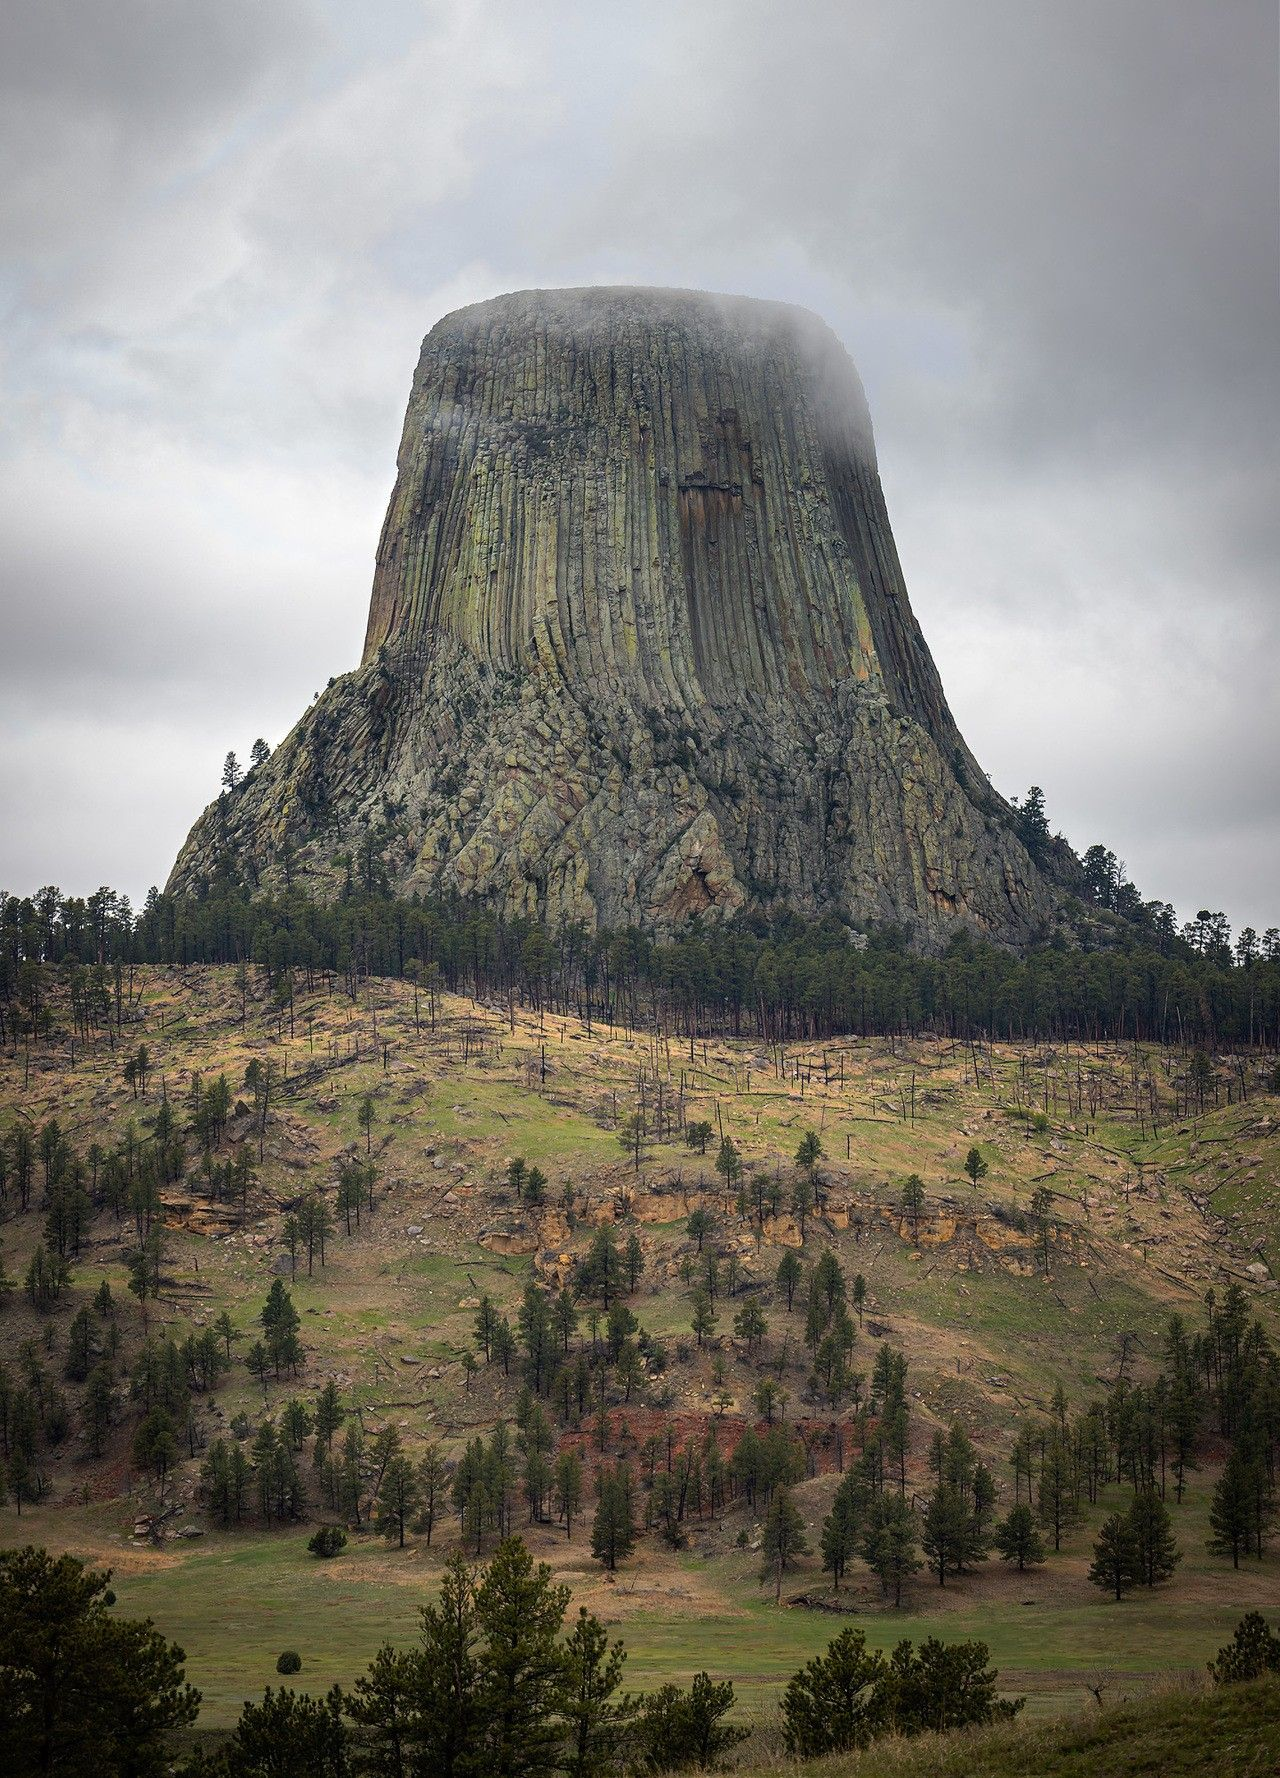 Pin by Edgar Guerrero on amazing pics Devils tower